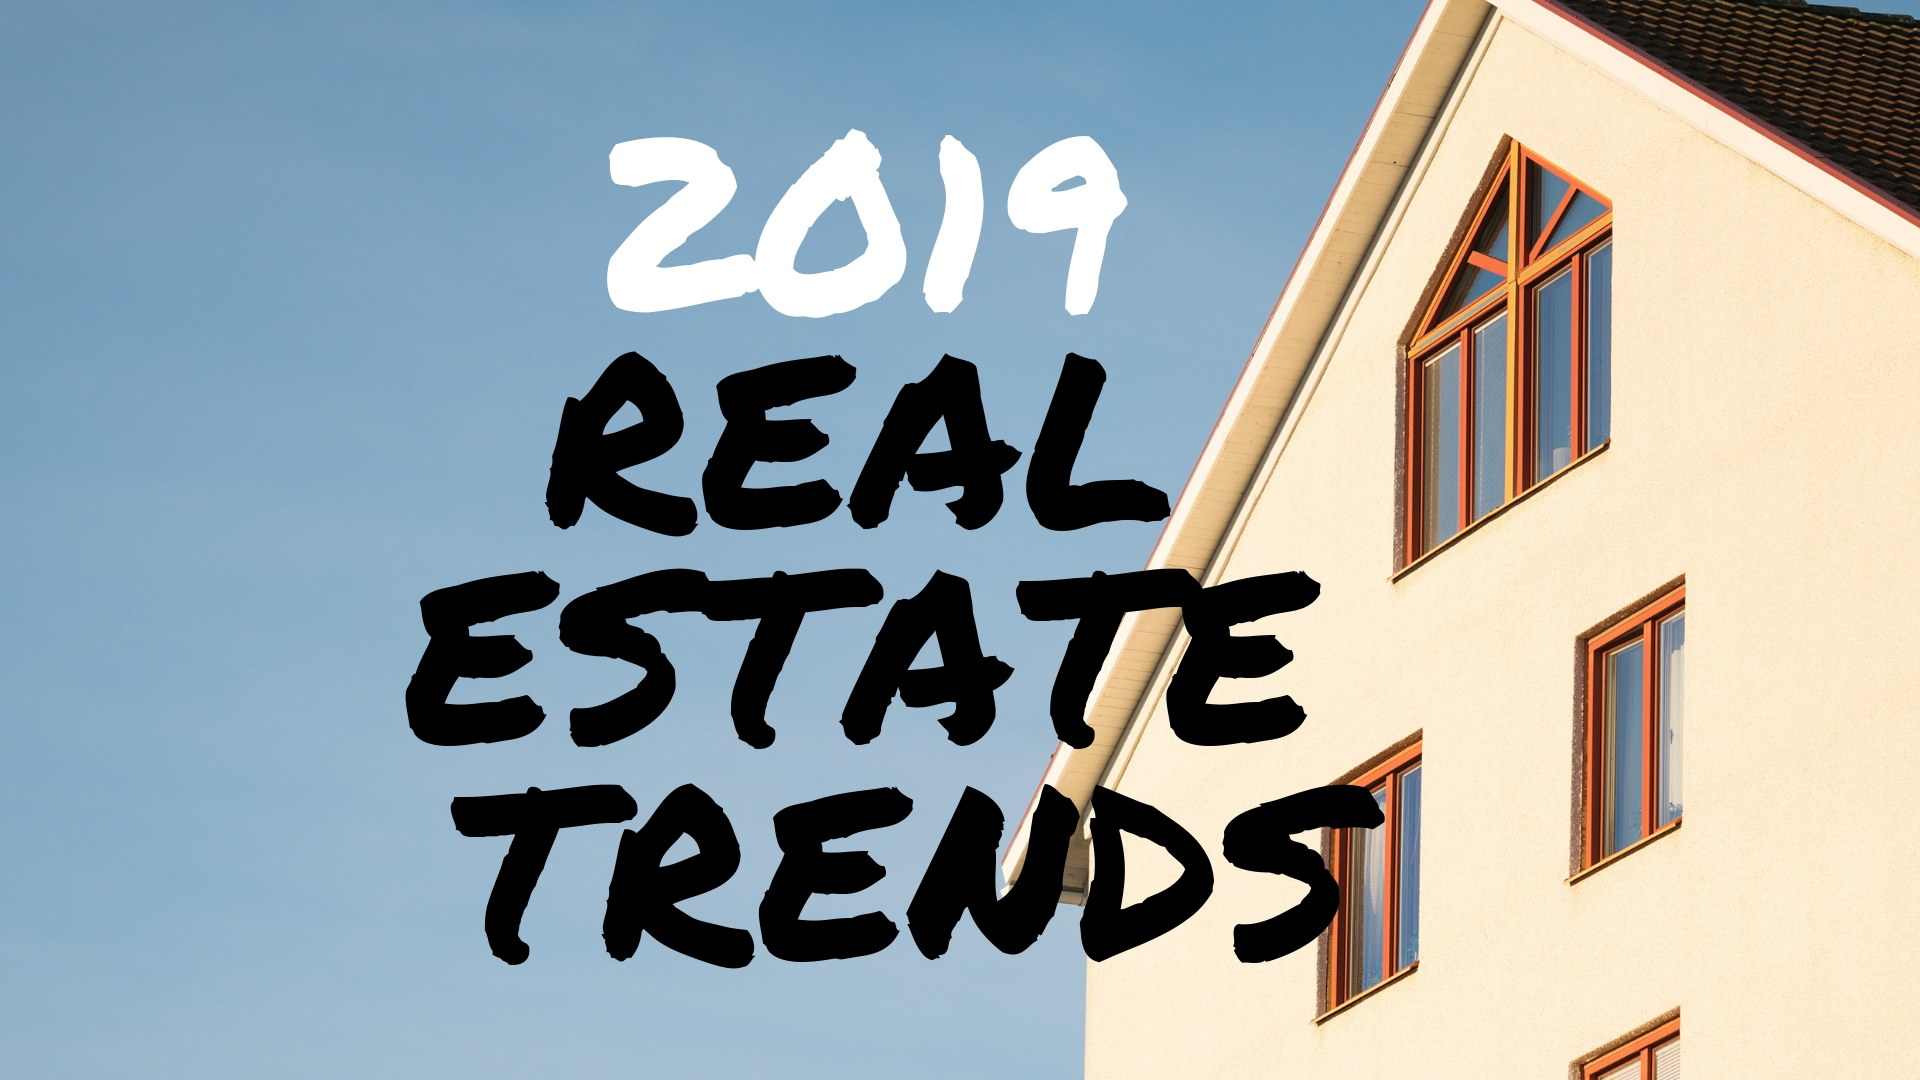 2019 real estate trends.jpg